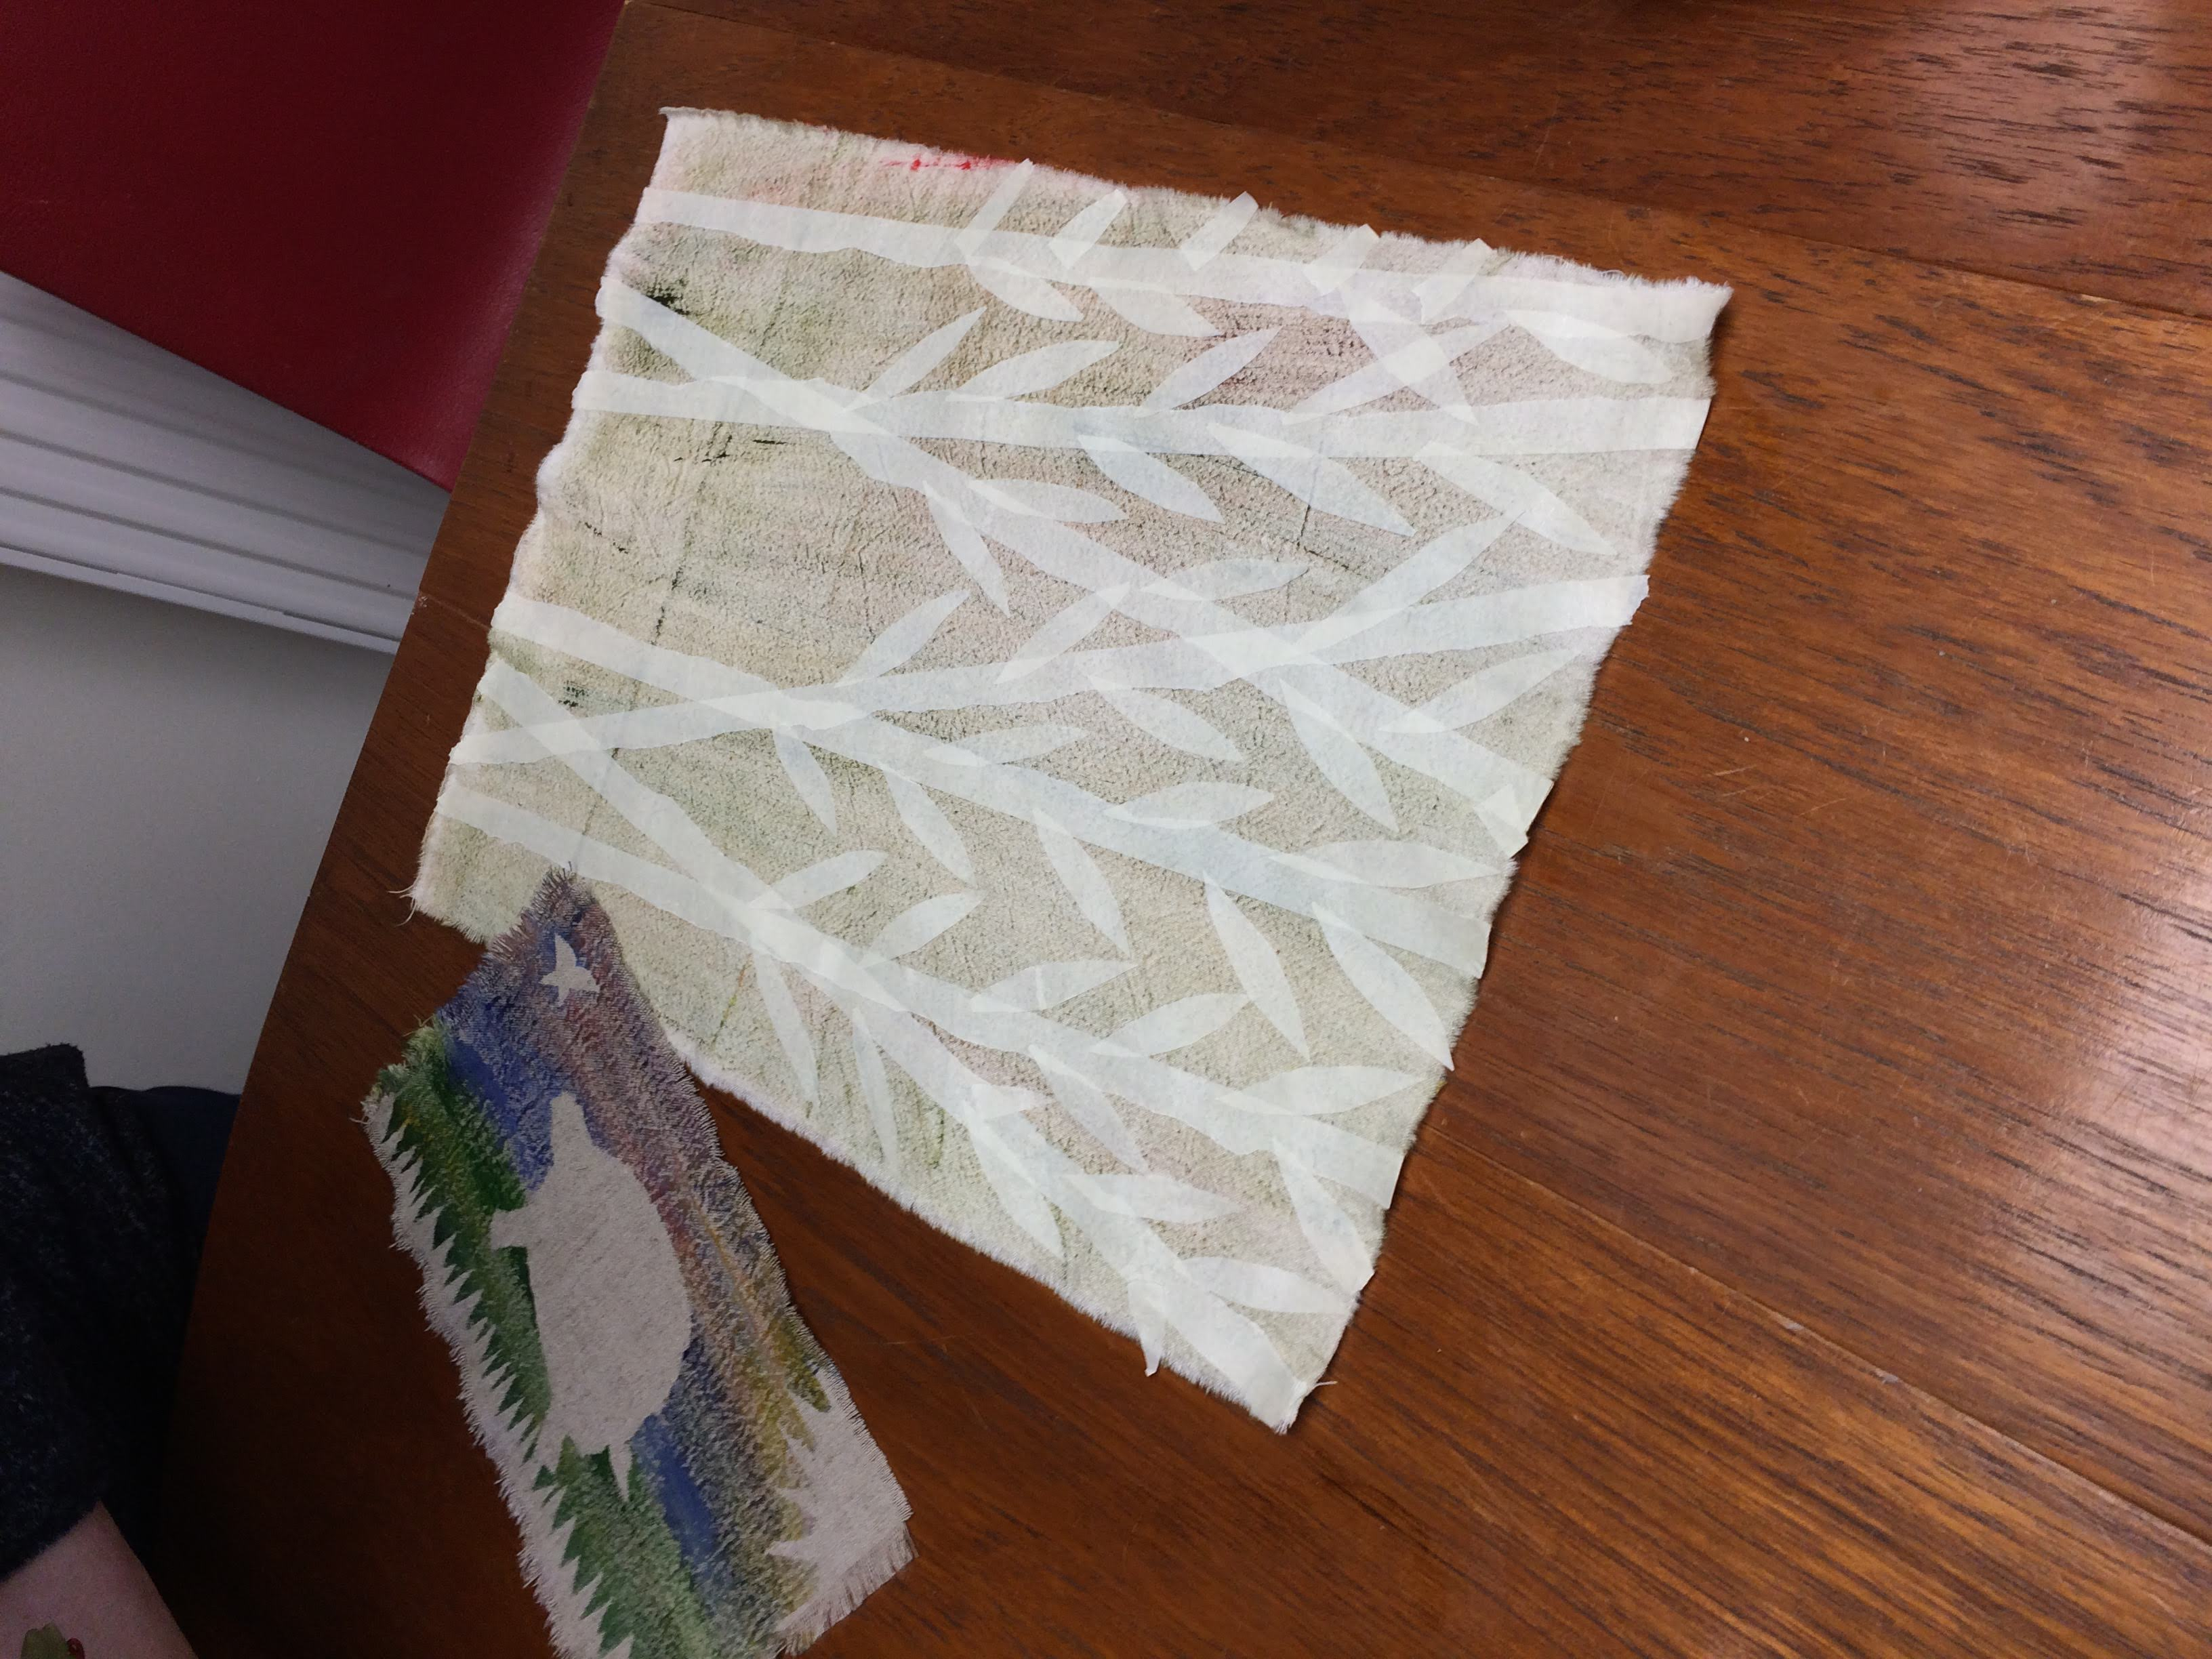 Textiles & Mixed Media resist dyeing with Gill Collinson at Cambridge Art Makers